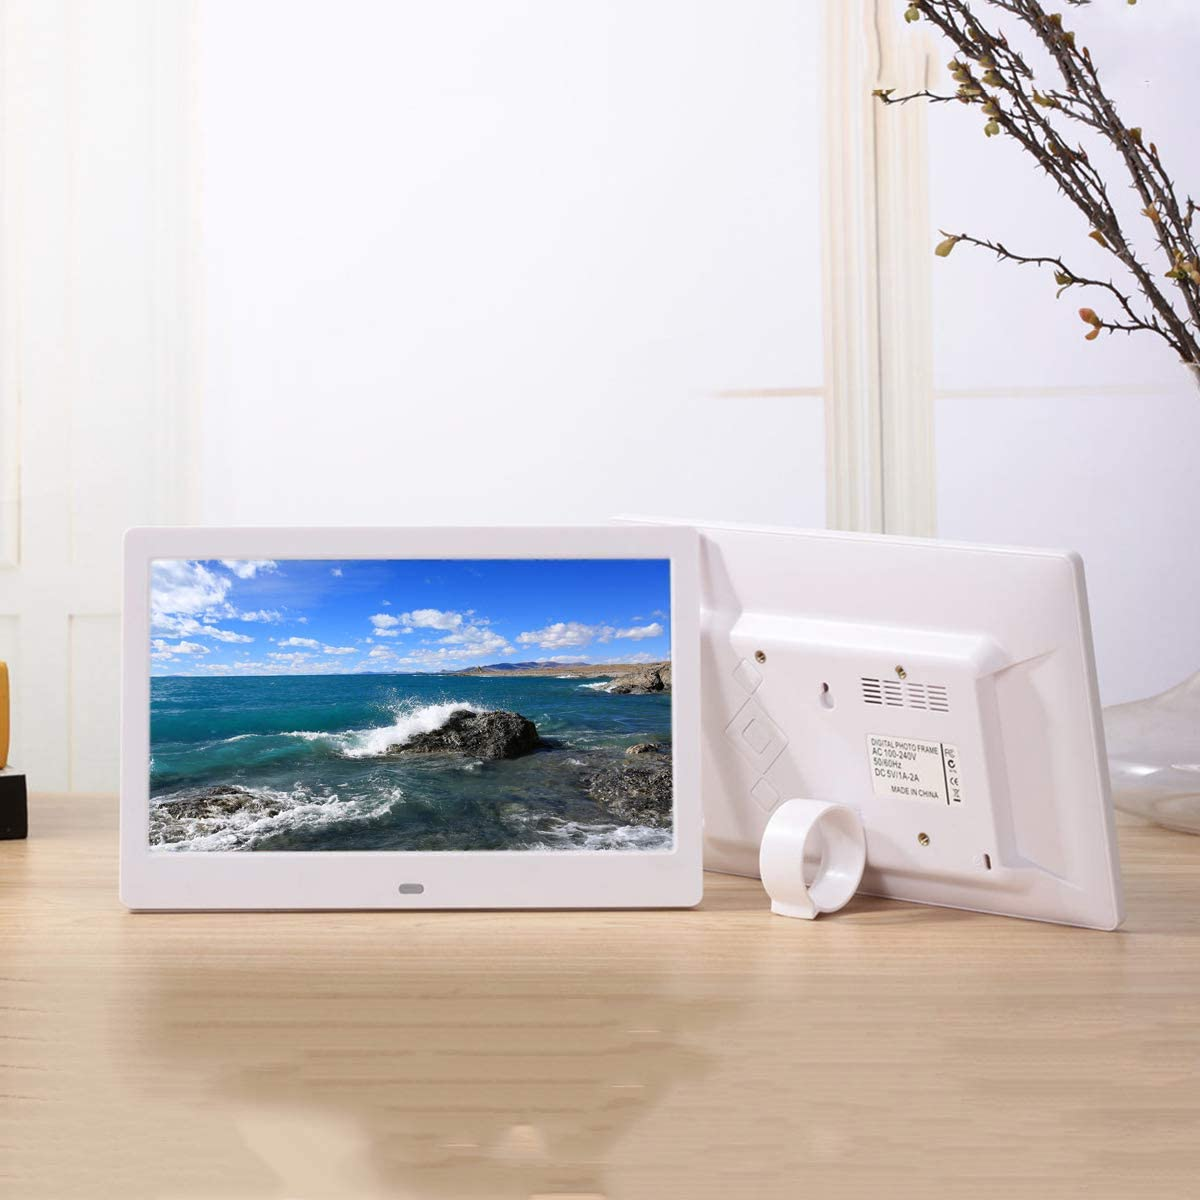 Multifunctional Touch All-in-one Machine Commercial Advertising Machine Supports 1080P Black Color//White Color 10-inch high-Definition Digital Photo Frame